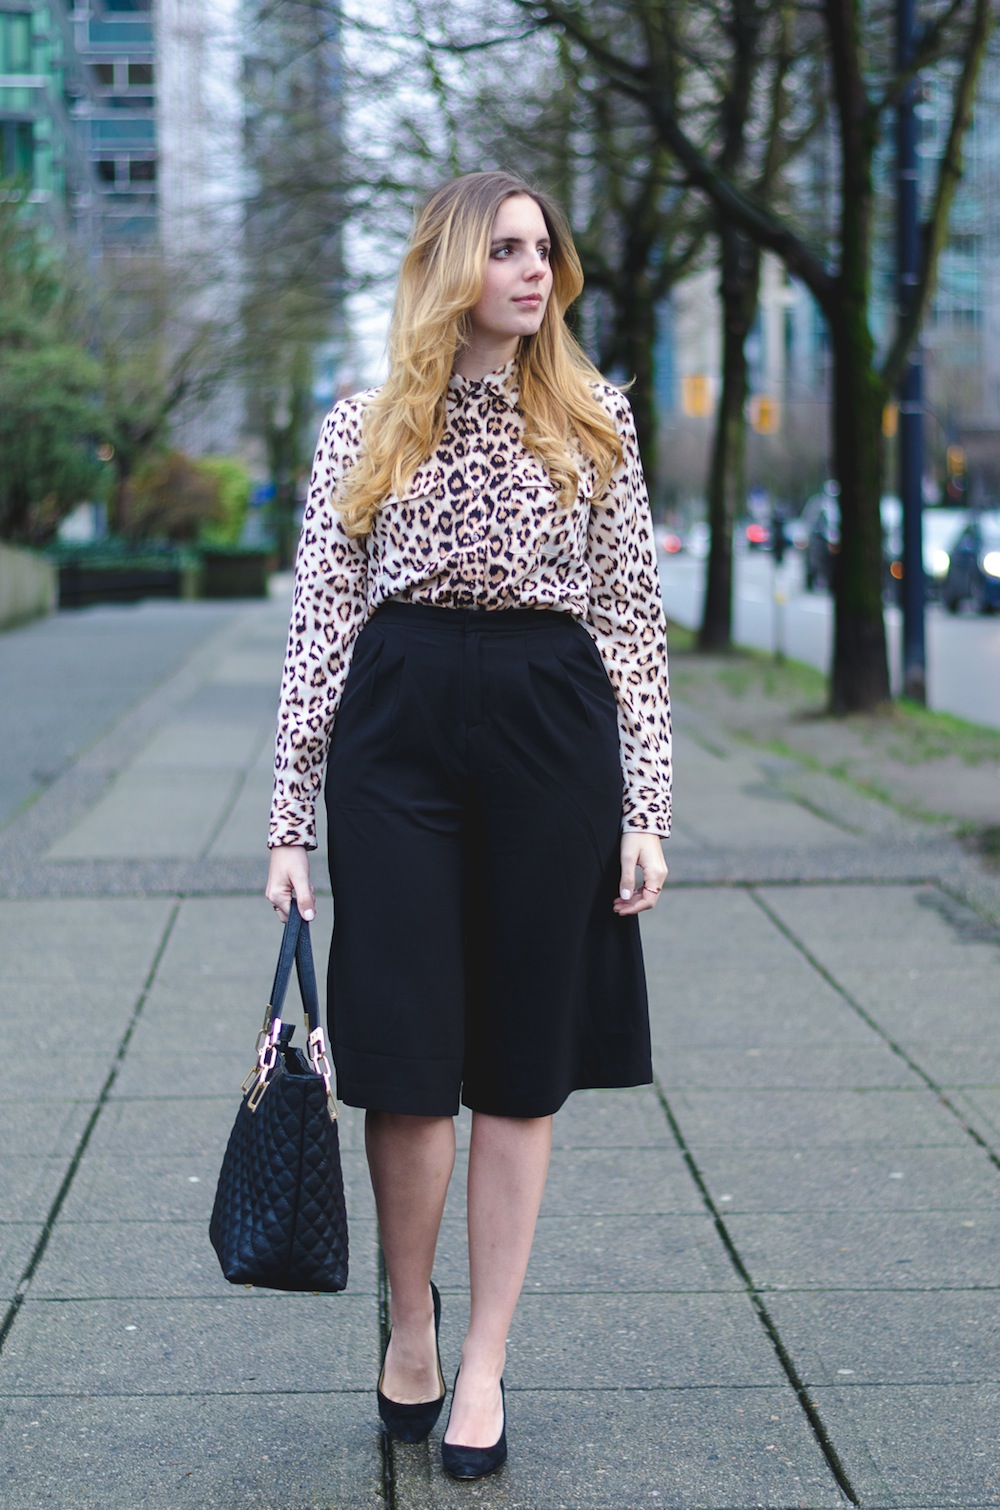 the urban umbrella style blog, vancouver style blog, vancouver style blogger, vancouver style bloggers, vancouver fashion blog, vancouver lifestyle blog, vancouver health blog, vancouver fitness blog, vancouver travel blog, canadian fashion blog, canadian style blog, canadian lifestyle blog, canadian health blog, canadian fitness blog, canadian travel blog, west coast style, bree aylwin, how to style prints, printed outfit ideas, stylish print outfits, fashion blogger link up, style blogger link up, how to look chic in the winter, top vancouver fashion bloggers, top fashion blogs, best style blogs 2015, popular fashion blogs, top style blogs, top lifestyle blogs, top fitness blogs, top health blogs, top travel blogs